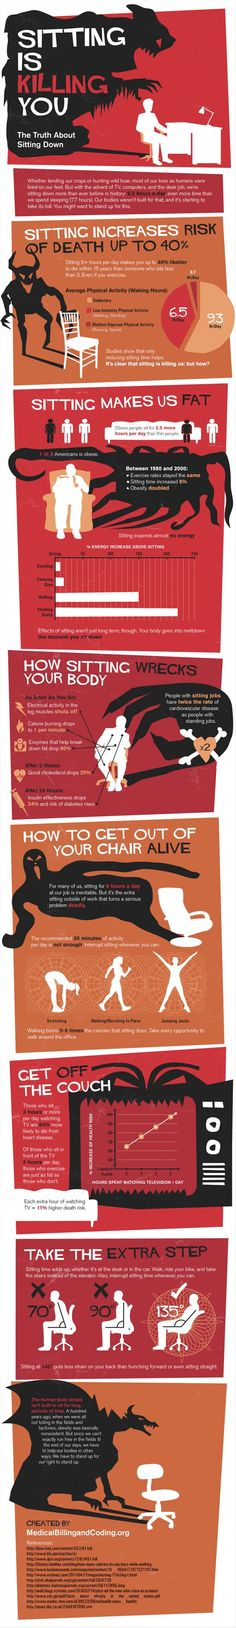 Just How Dangerous Is Sitting All Day? As we enter the second decade of the 21st century, there is one thing nearly all modern Americans have in common: we sit all the time. An Infographic by medicalbillingand.... #diet #workout #fitness #weightloss #loseweight